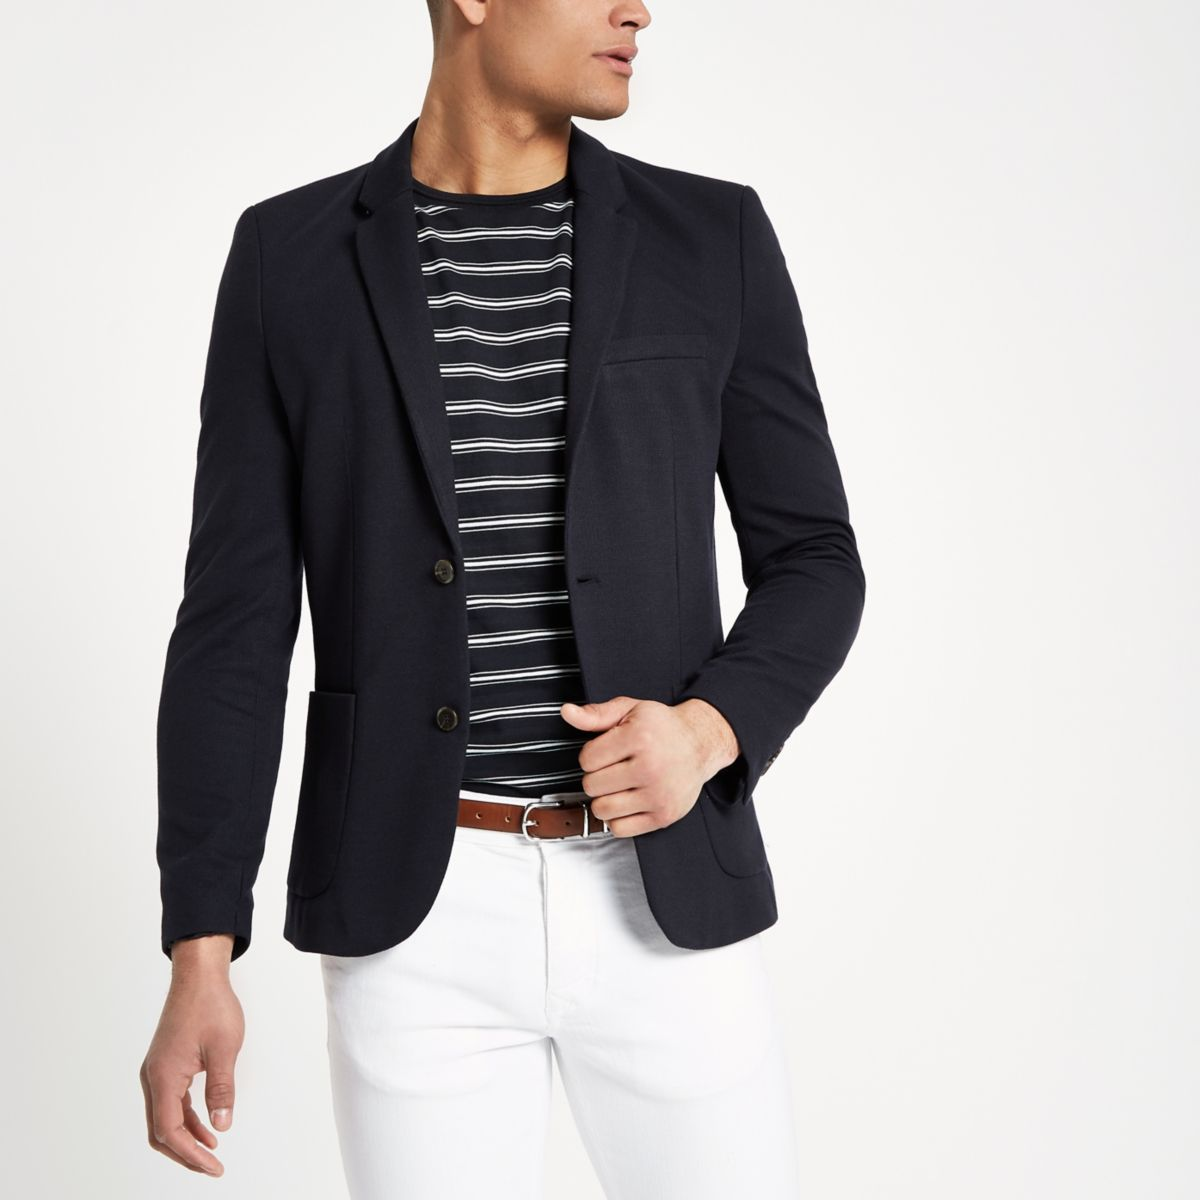 Find mens skinny blazer at ShopStyle. Shop the latest collection of mens skinny blazer from the most popular stores - all in one place.